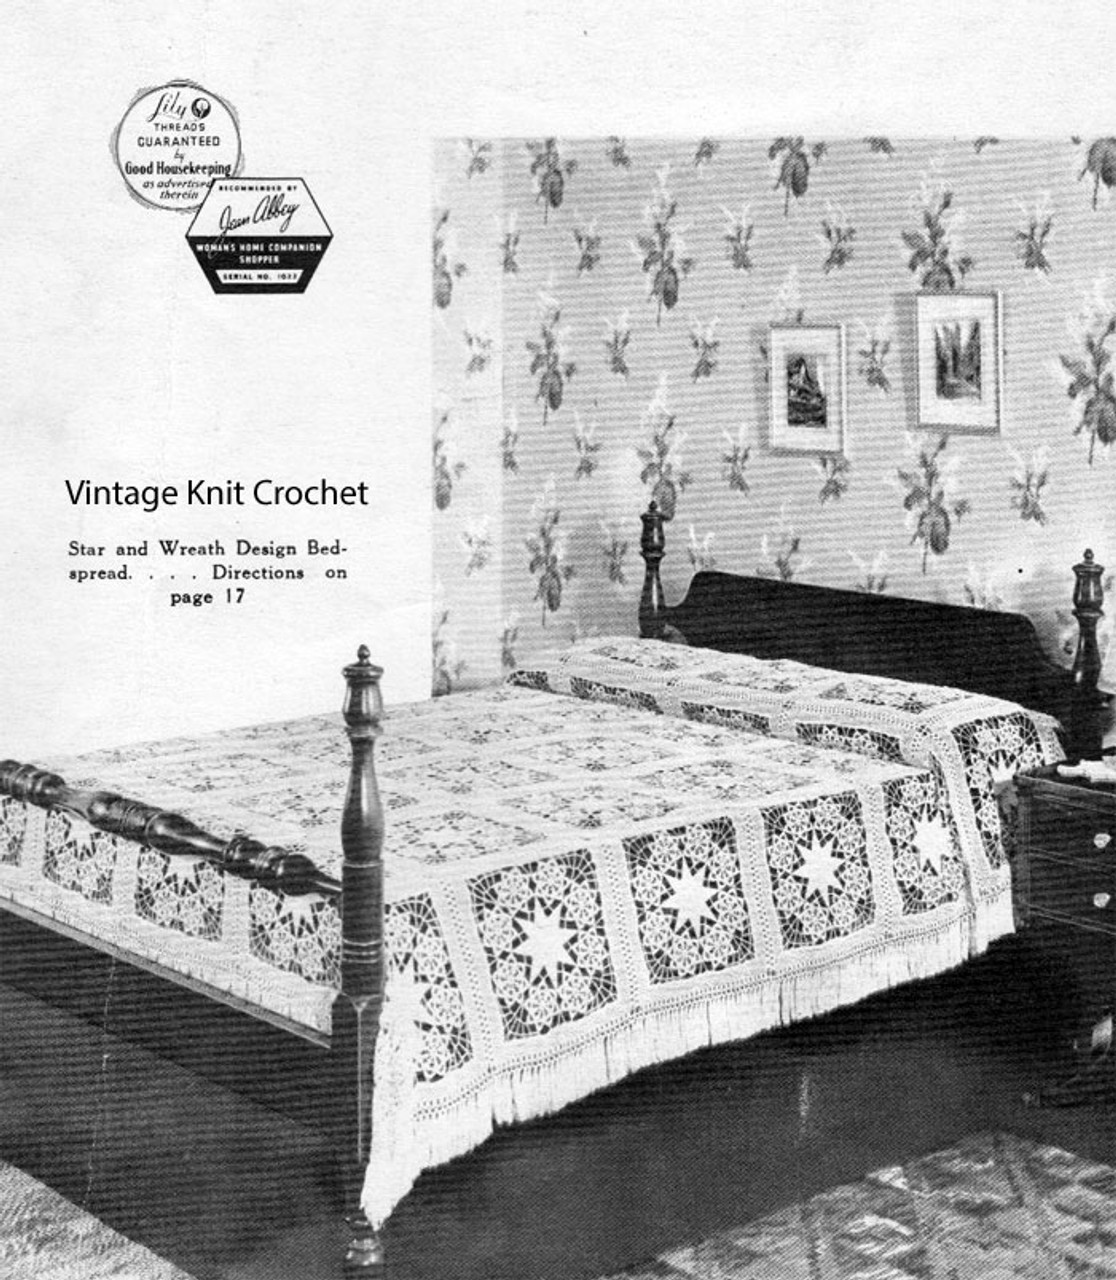 Vintage Star and Wreath Crochet Bedspread Pattern No 809